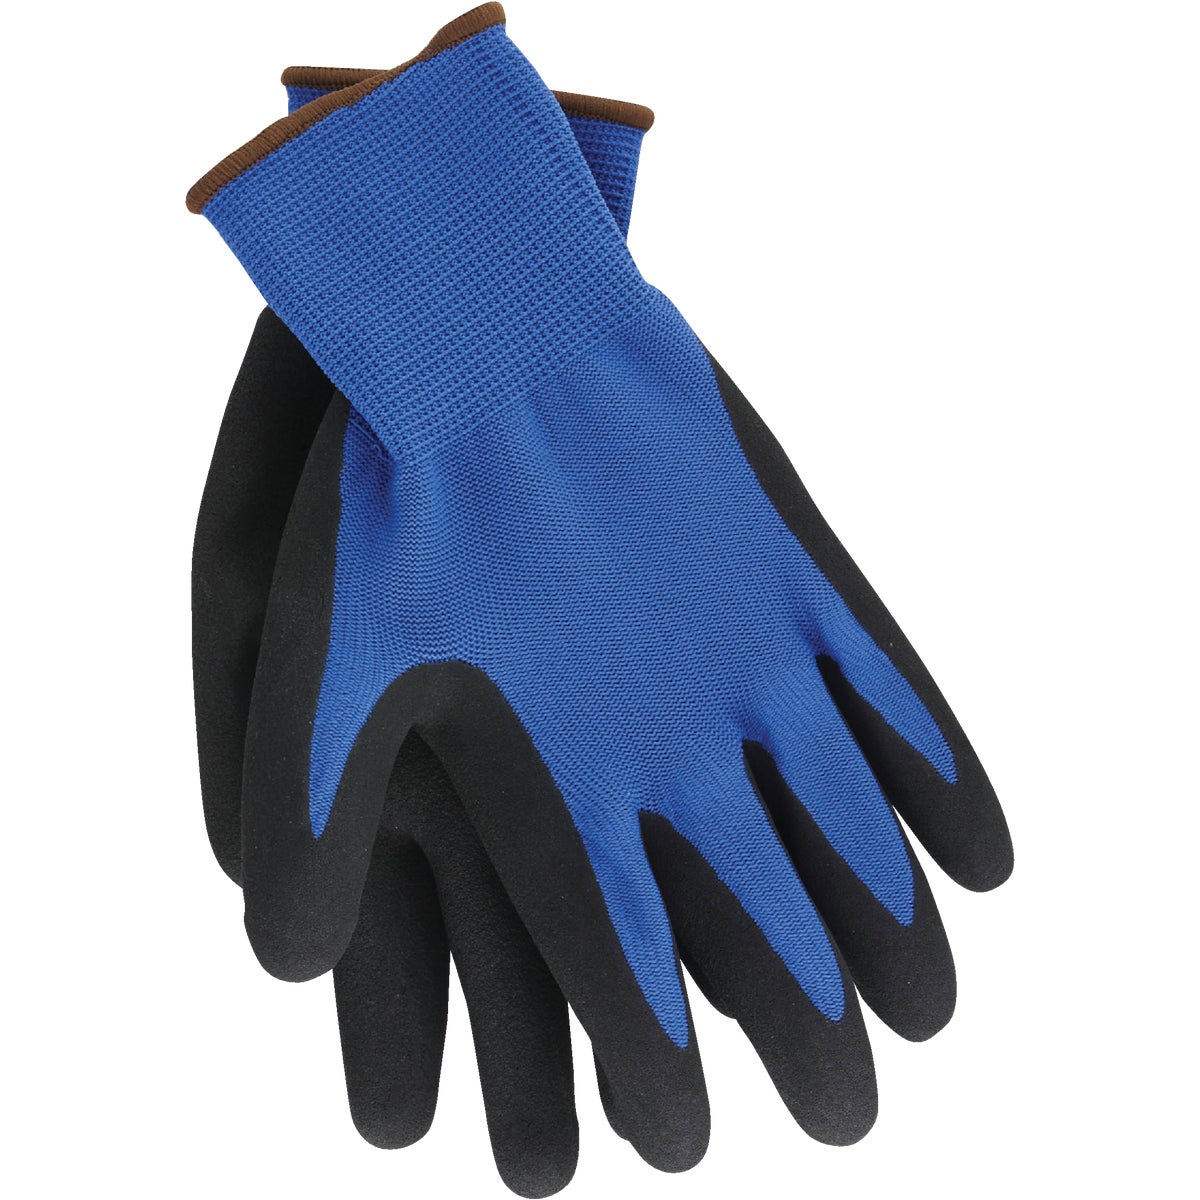 BLUE MEDIUM GRIP GLOVE